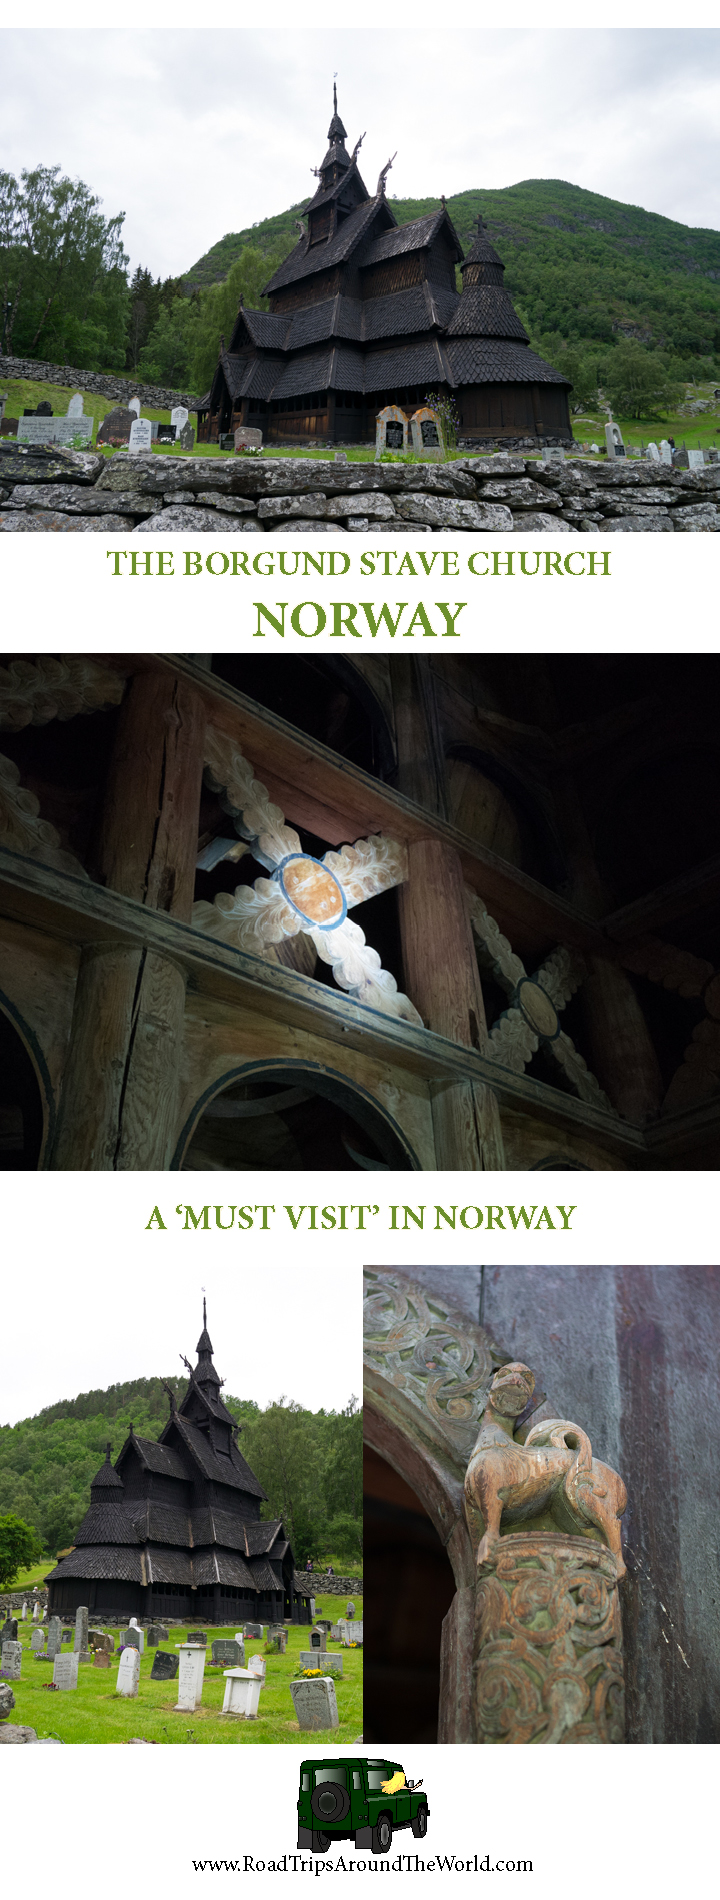 The Borgund Stave Church - A must visit in Norway - Check out www.roadtripsaroundtheworld.com for more information